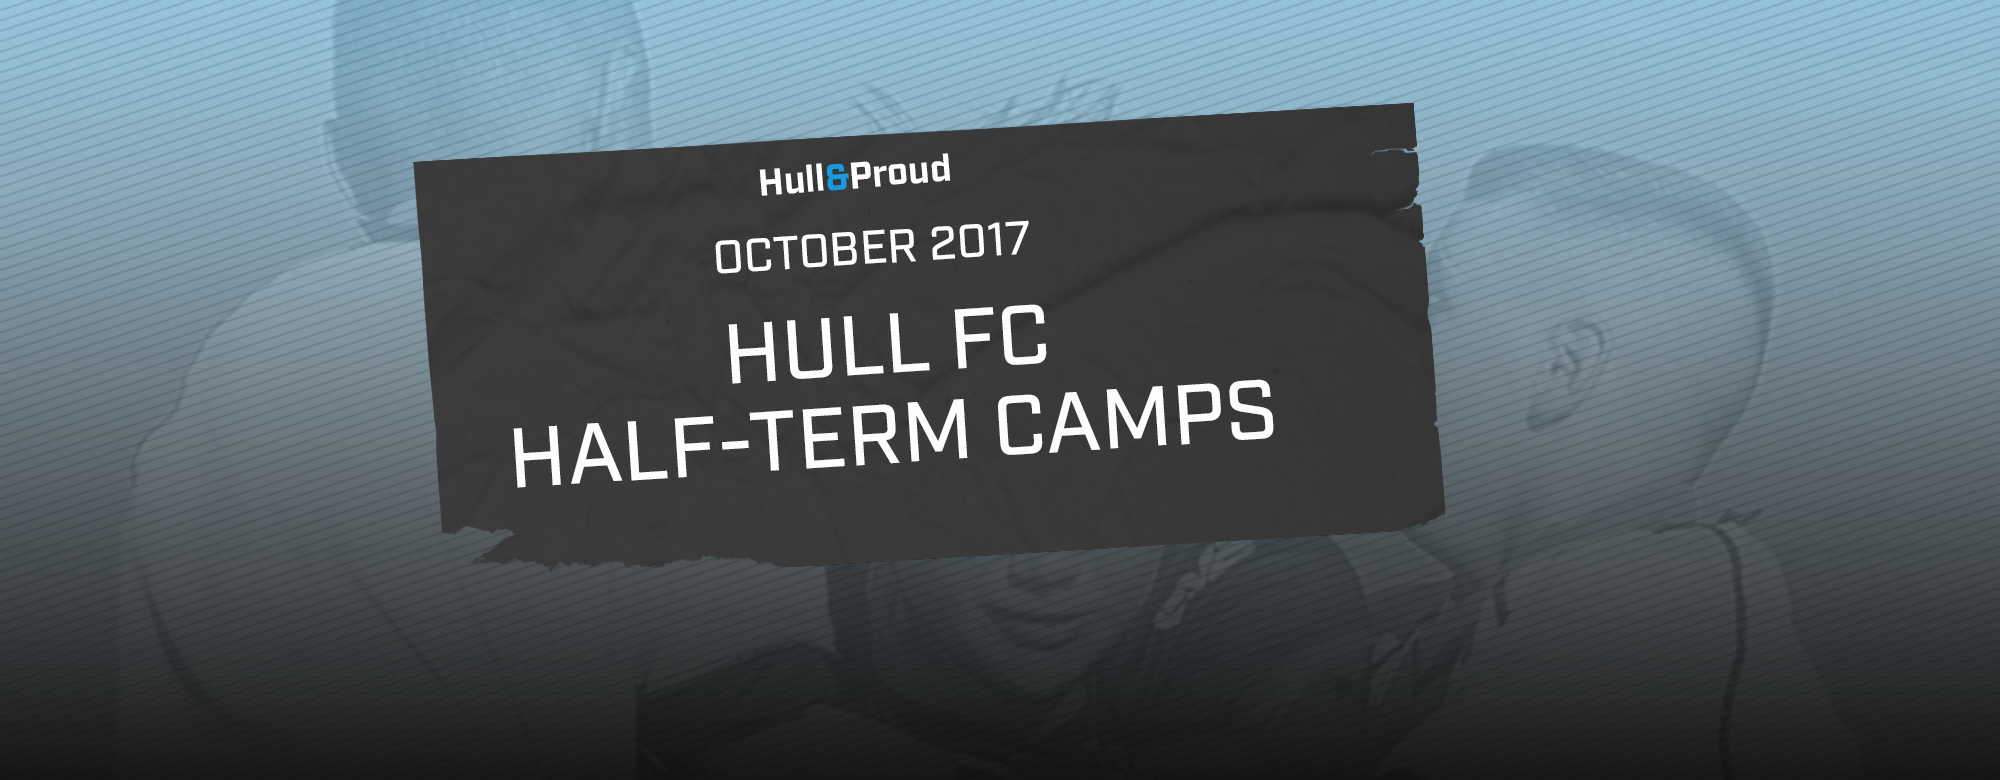 Hull FC October Half-term Camps